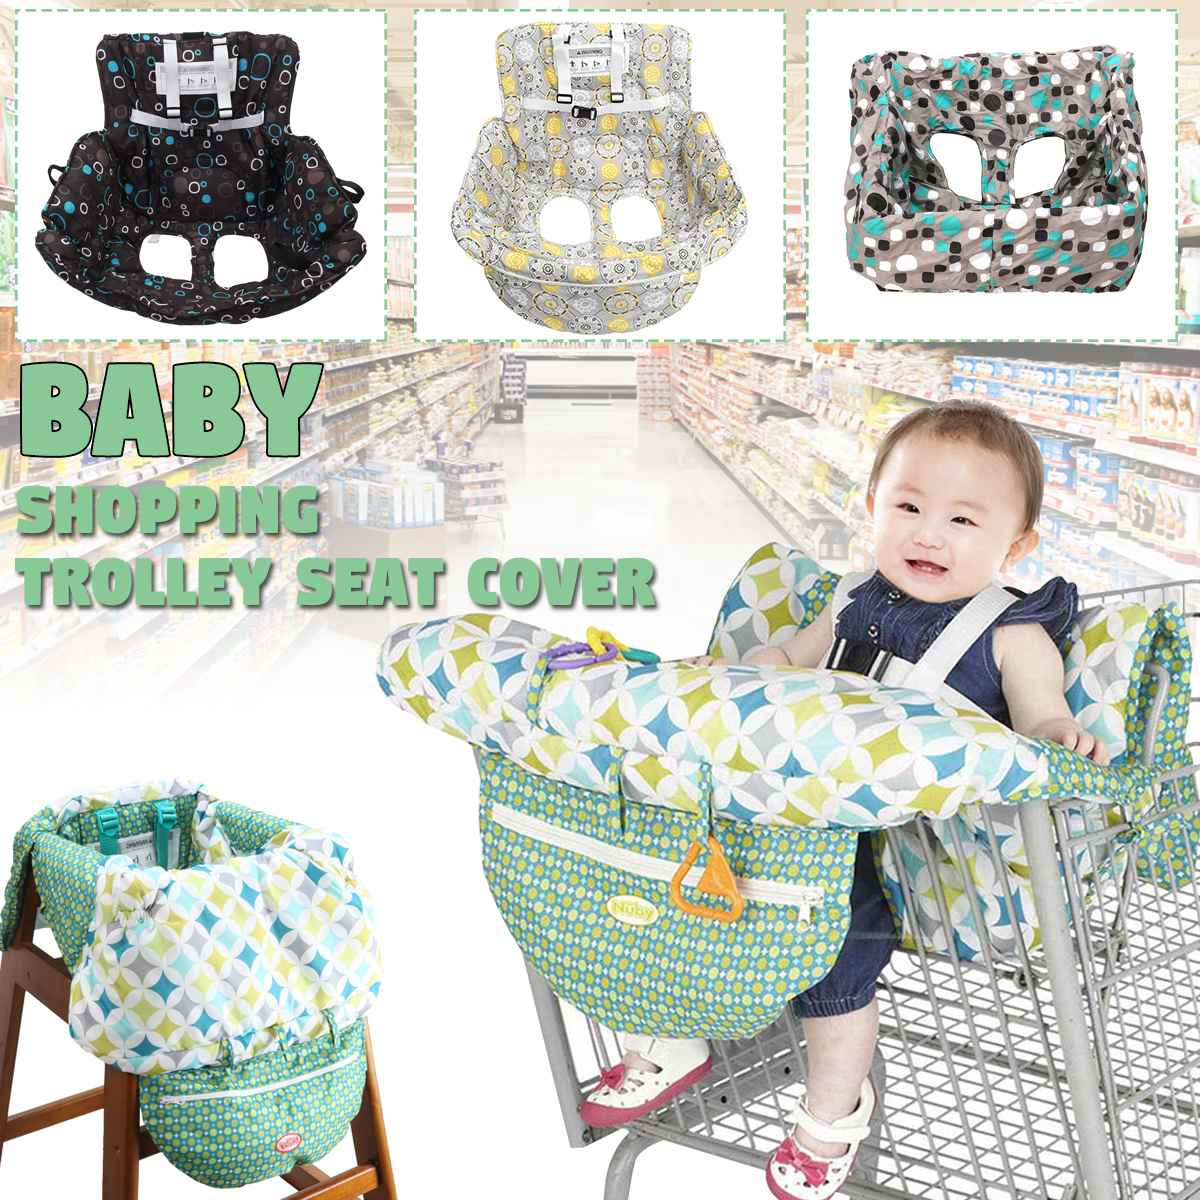 4 Type Multifunctional Children Folding Shopping Cart Cover Protection Cover Trolley Soft Pad Infant Safety Seats For Kids